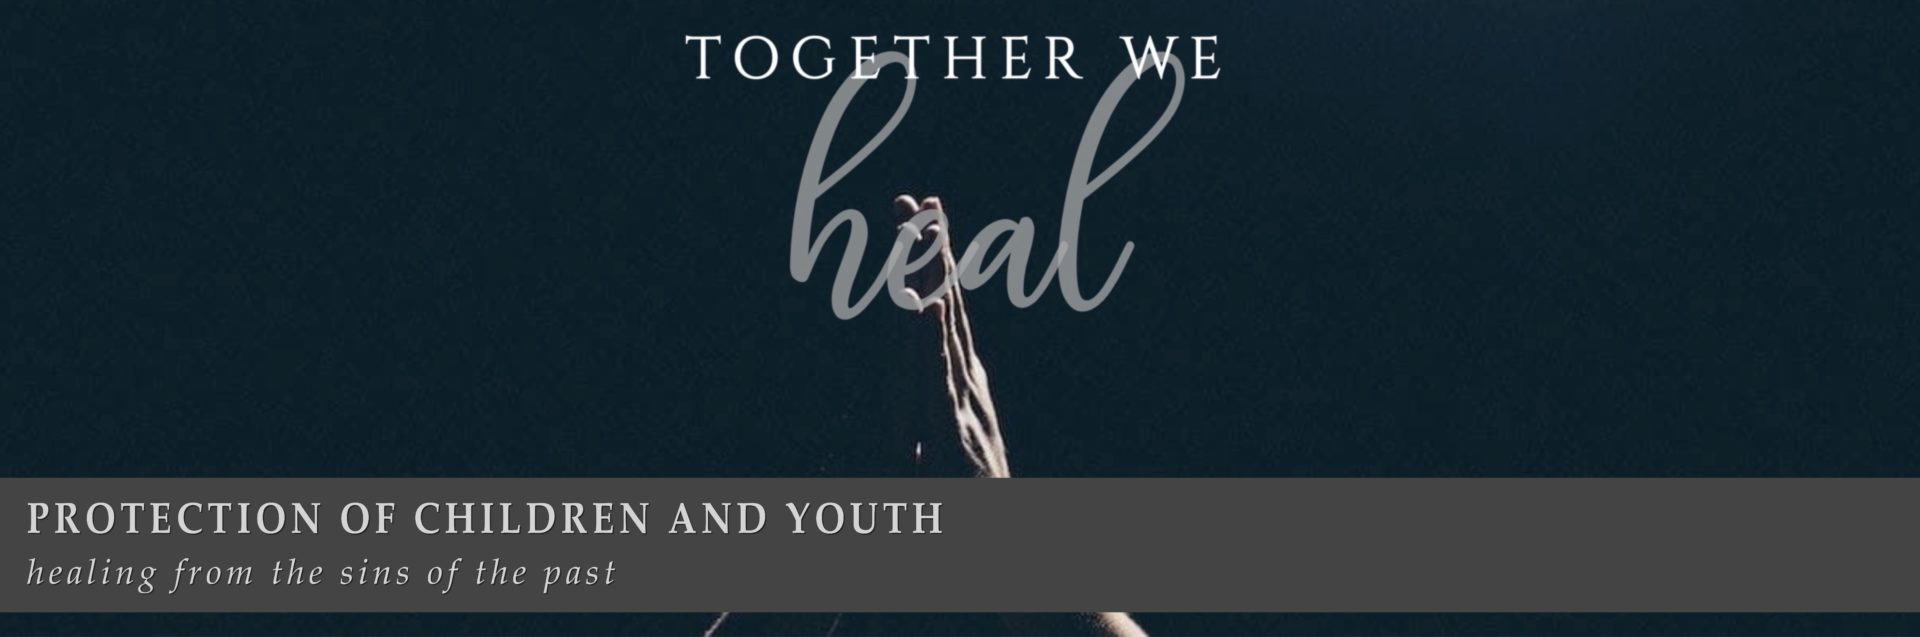 Together We Heal copy